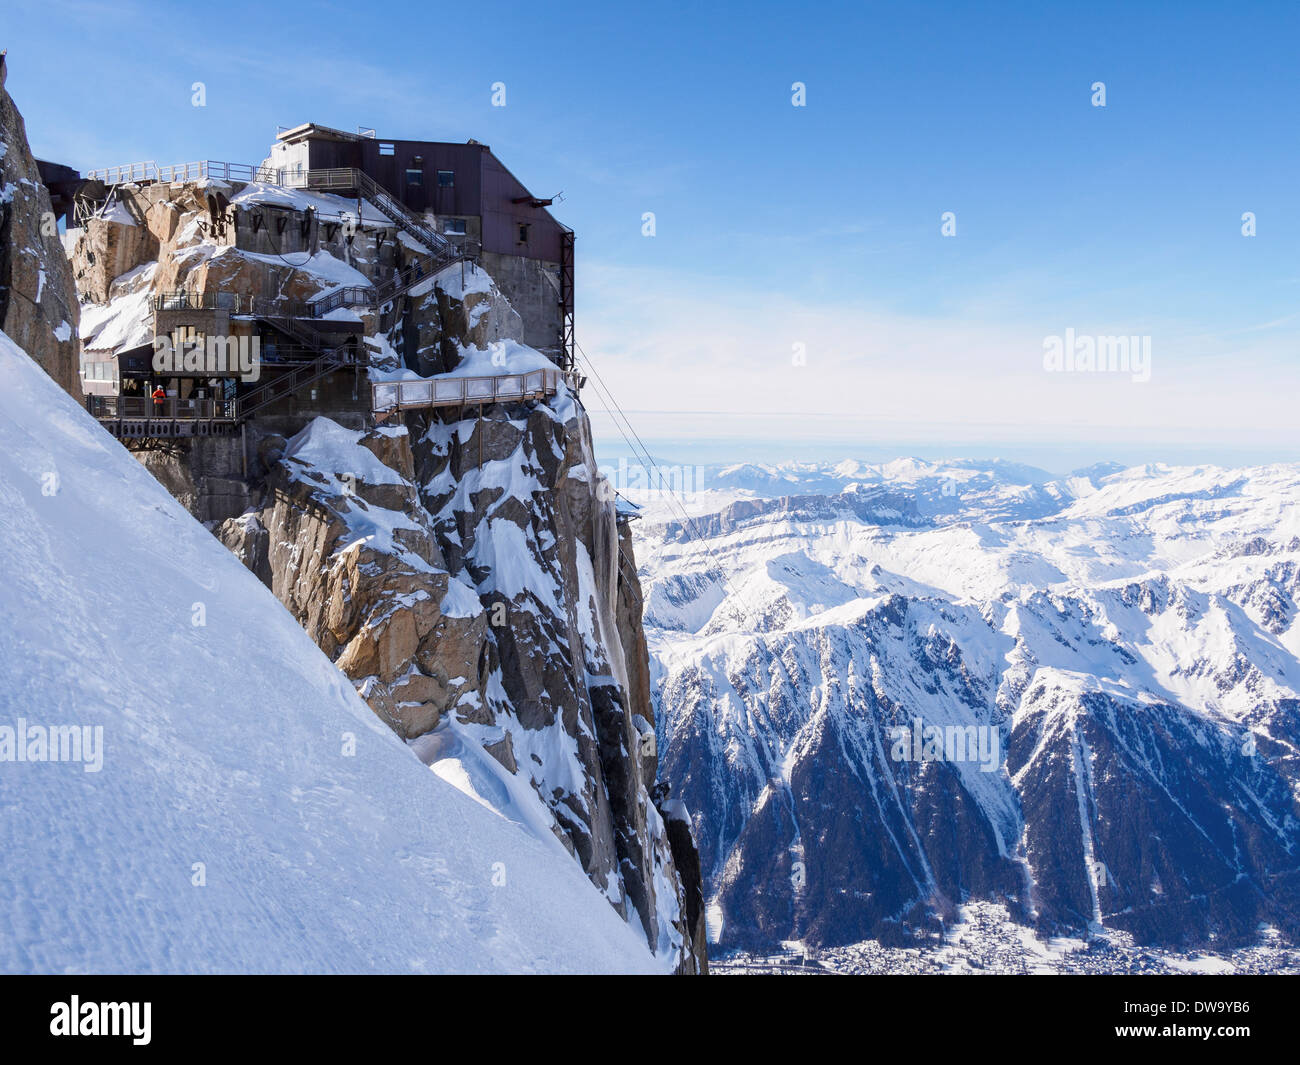 Aiguille du Midi top téléphérique cable-car station in winter snow in French Alps above Chamonix-Mont-Blanc, Haute Savoie, Rhone-Alpes, France - Stock Image